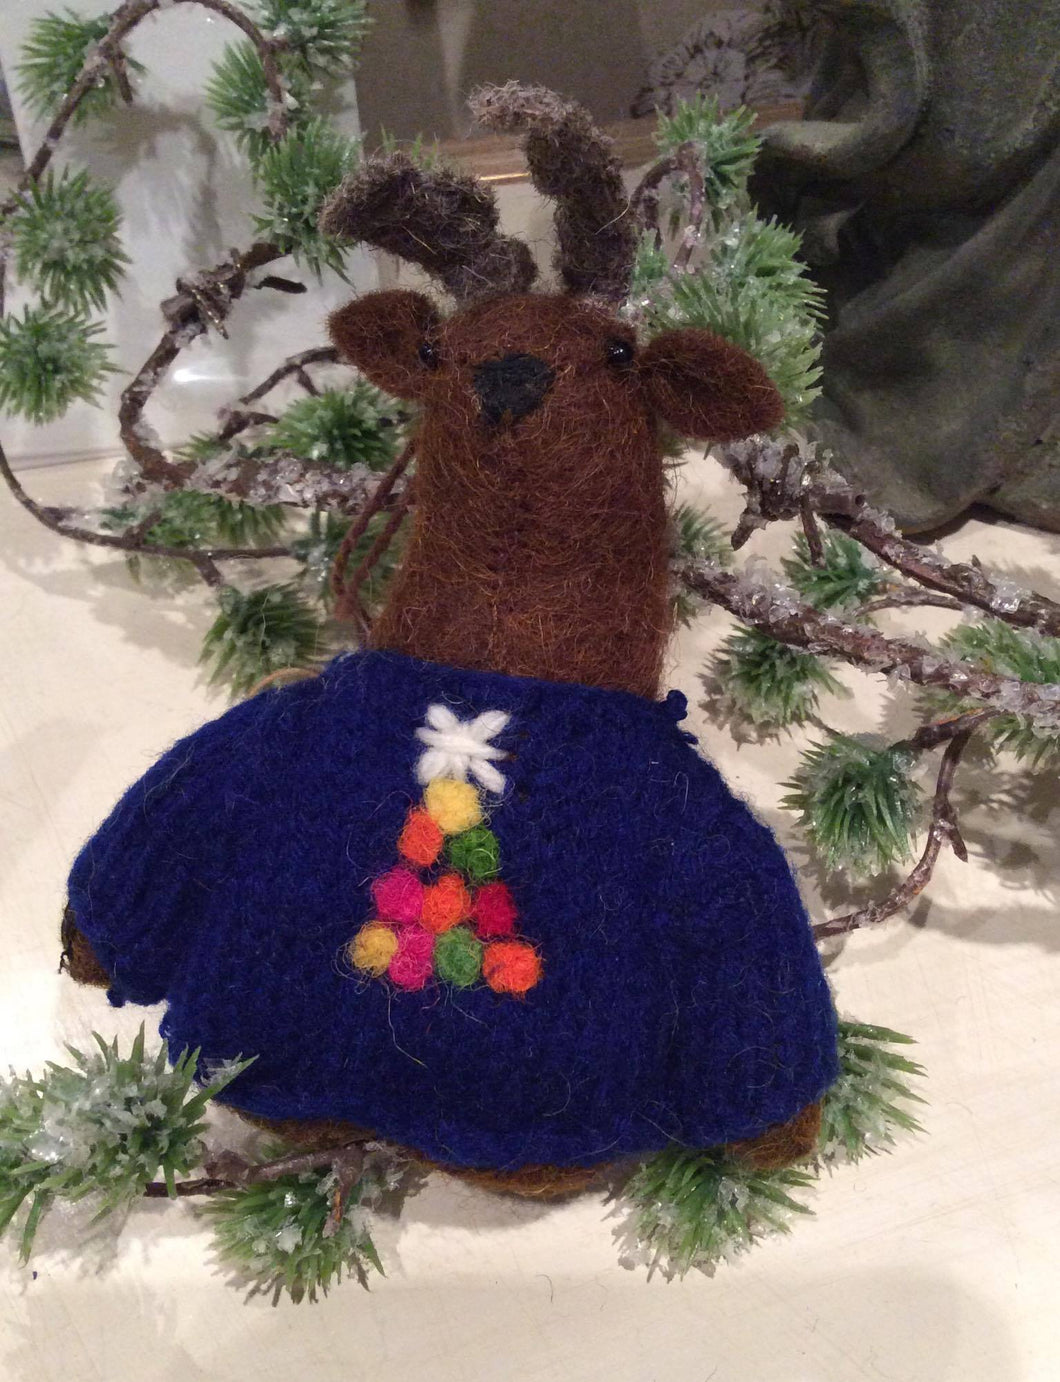 Reindeer with Blue Christmas Jumper